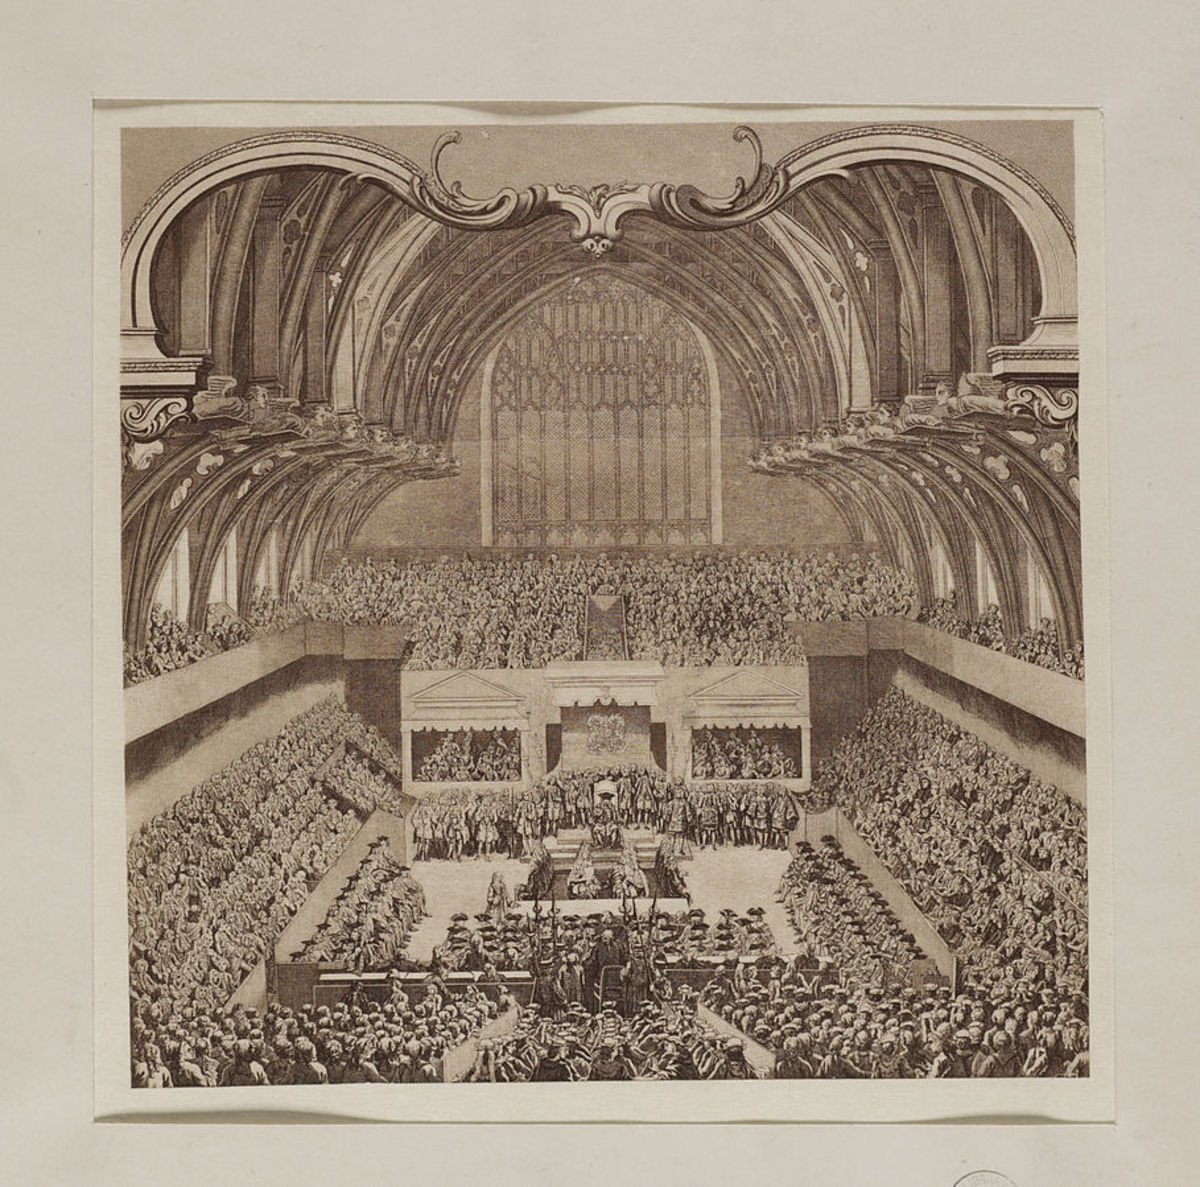 Lord Lovat's trial played to a full house in Westminster Hall.